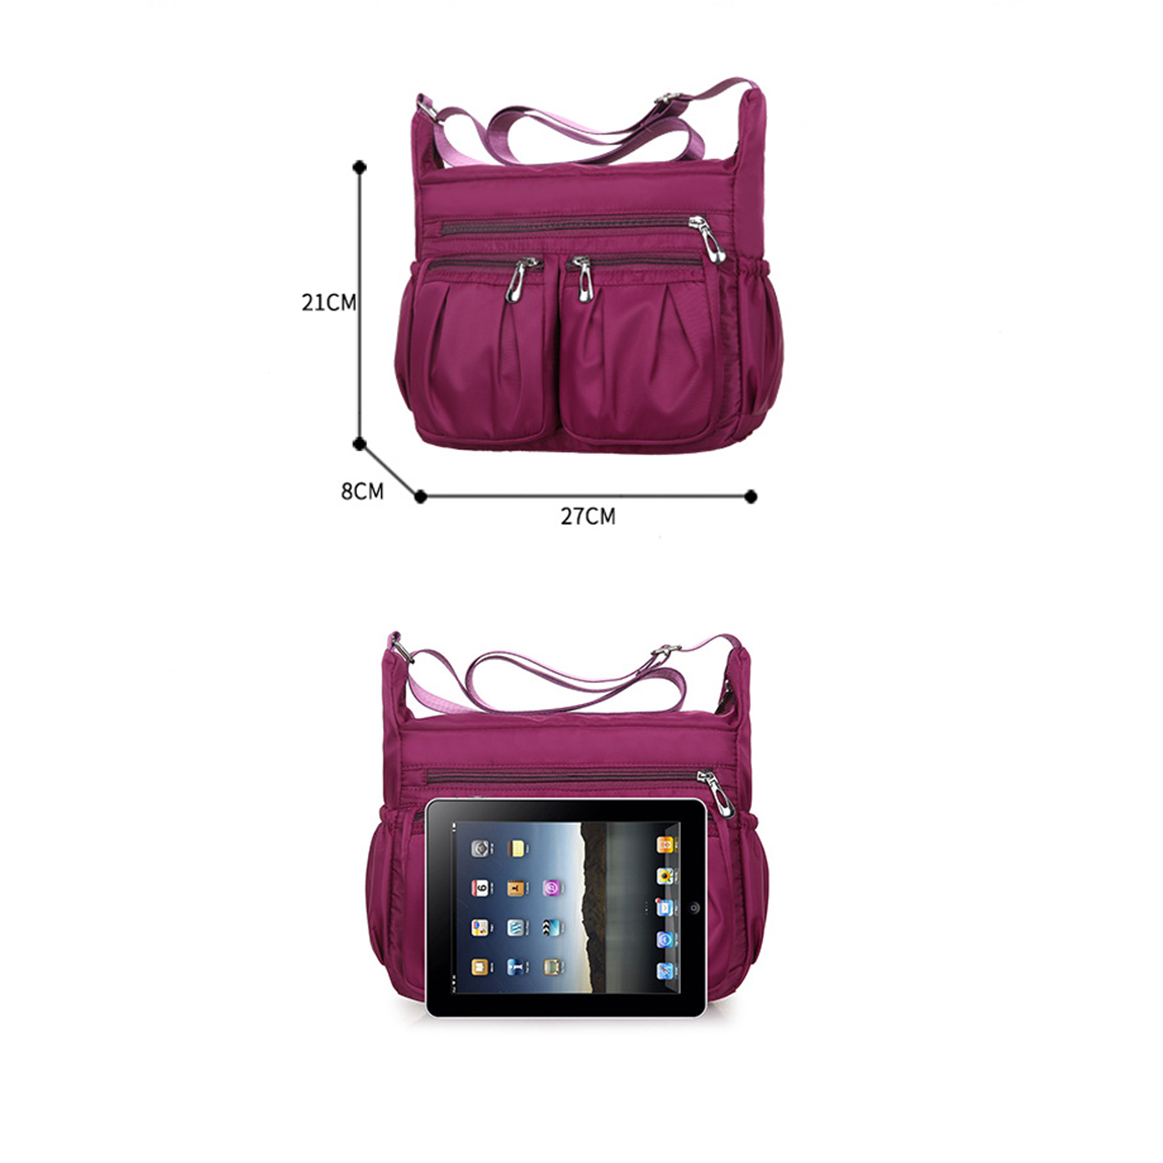 Waterproof Fashion Nylon Messenger Crossbody Bag MT0022